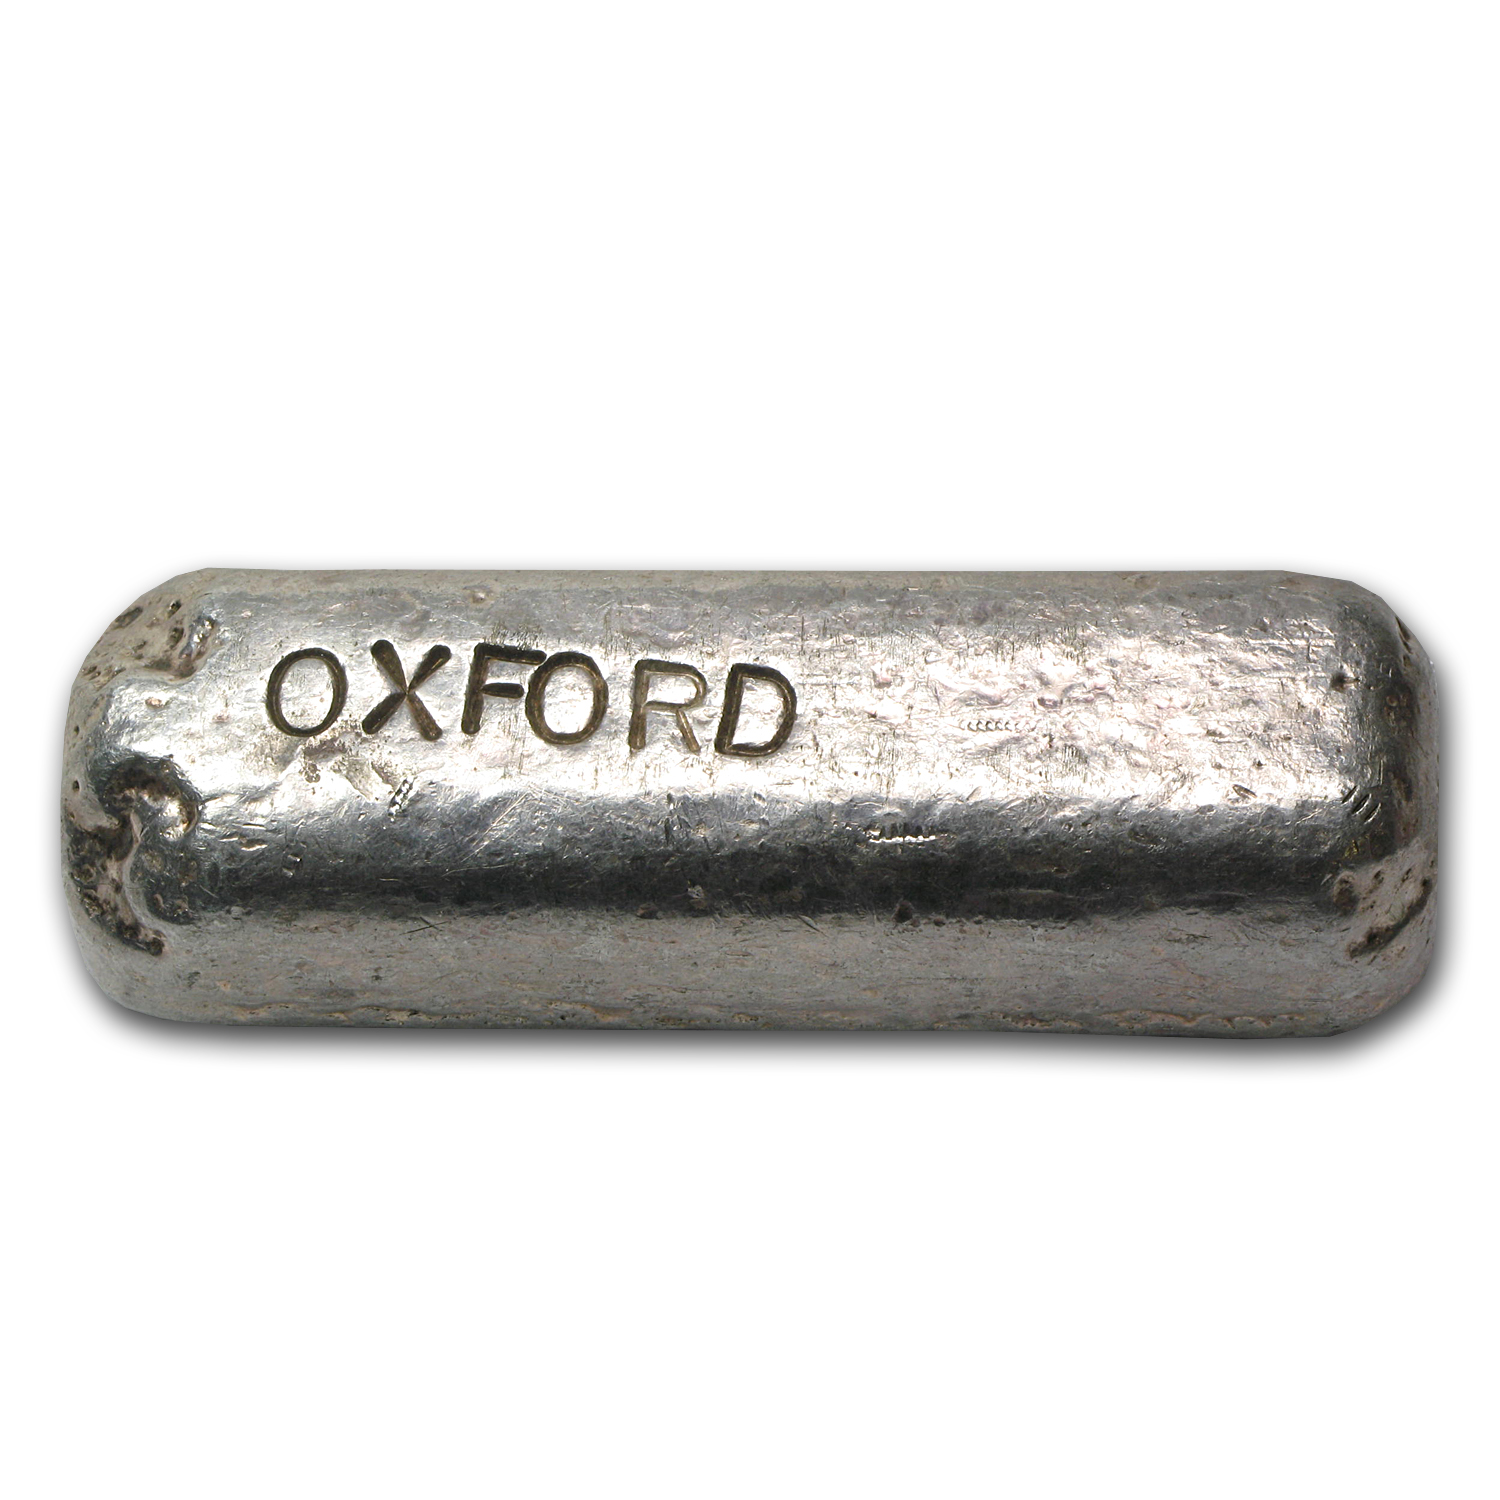 10.07 oz Silver Bar - Oxford (Poured)